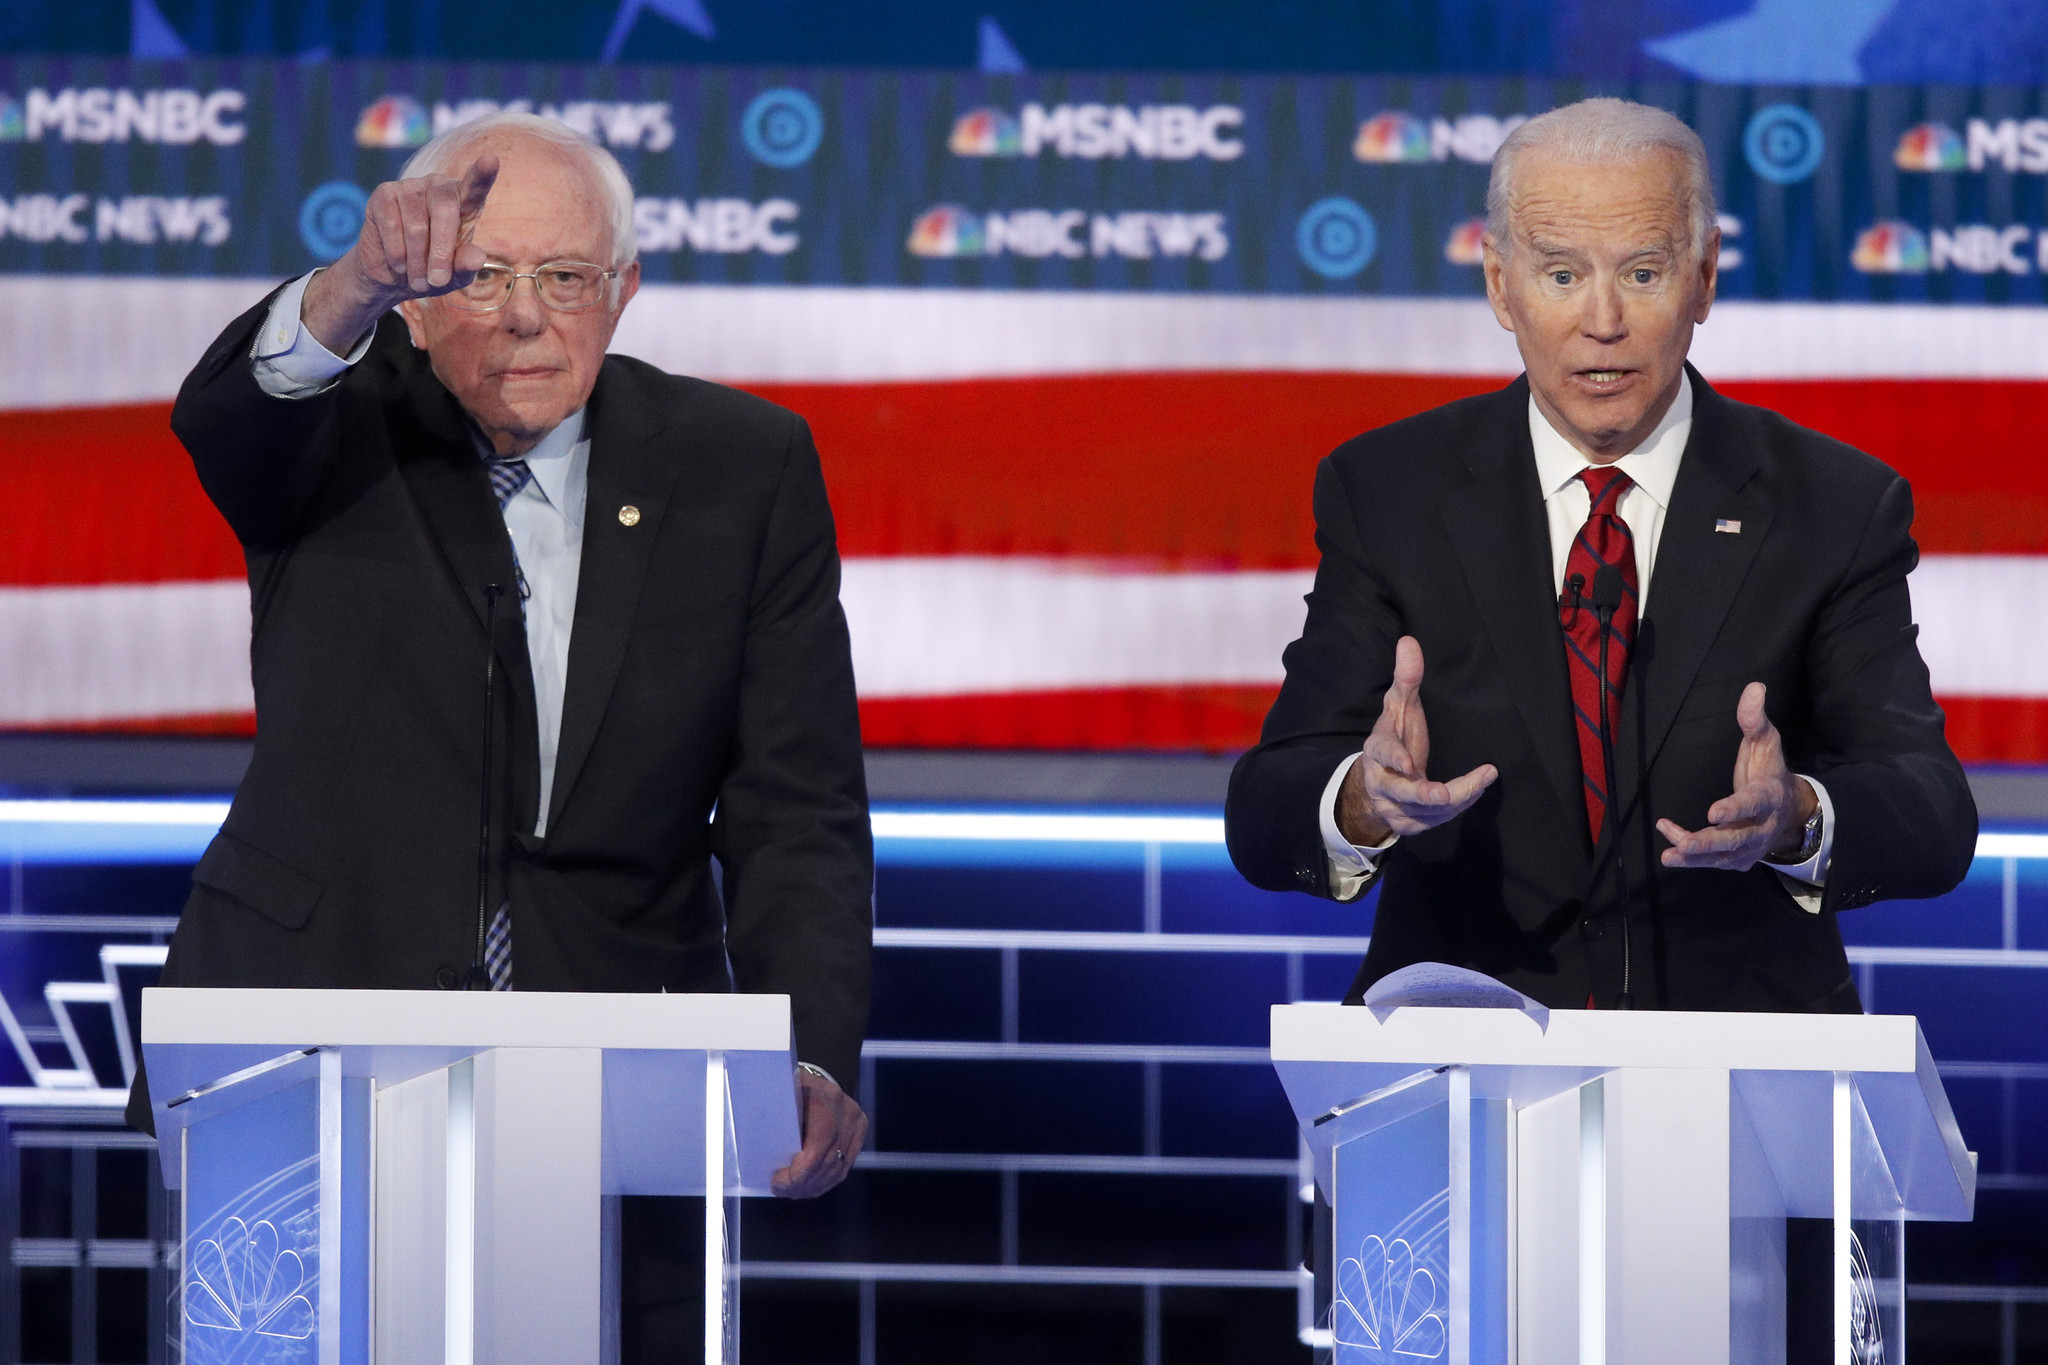 Sanders gears up for rough-and-tumble Democratic debate as Biden faces make-or-break moment